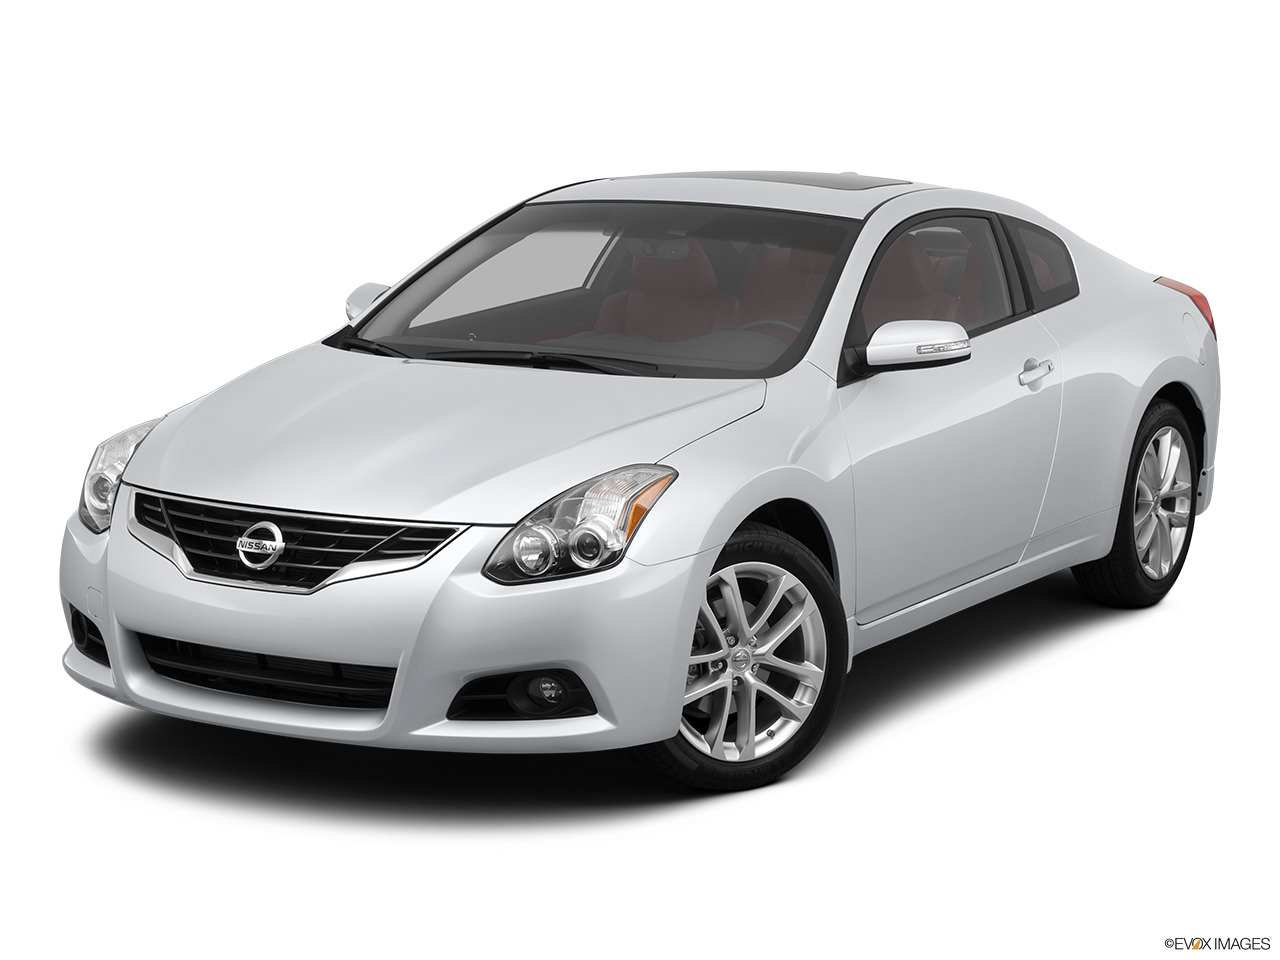 98 Best Review Nissan Altima Hybrid History for Nissan Altima Hybrid